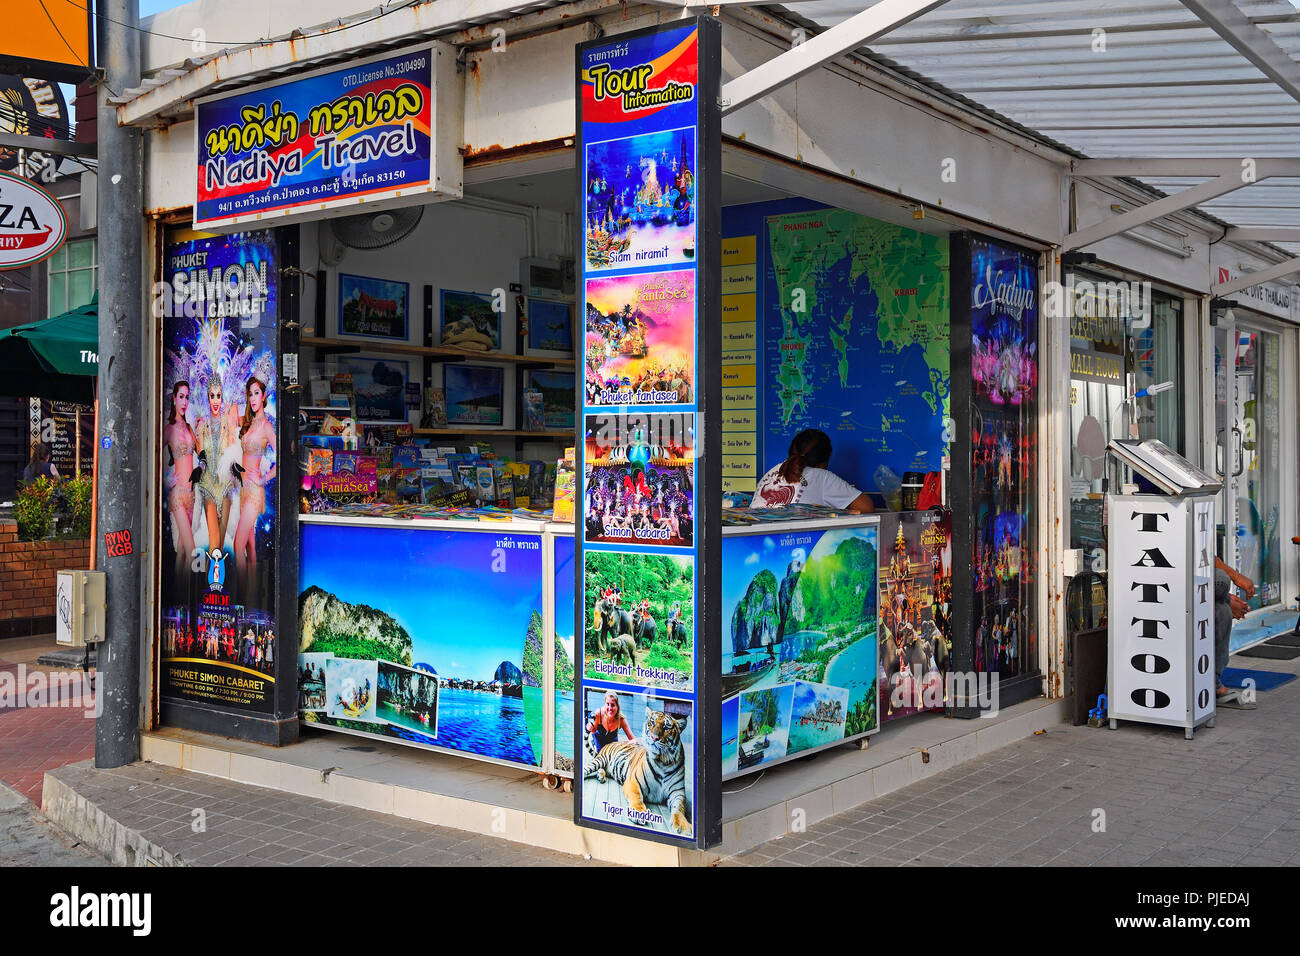 typical street state for the reservation of tours and excursions, Patong Beach, Phuket, Thailand, typischer Straßenstand für die Buchung von Touren un Stock Photo